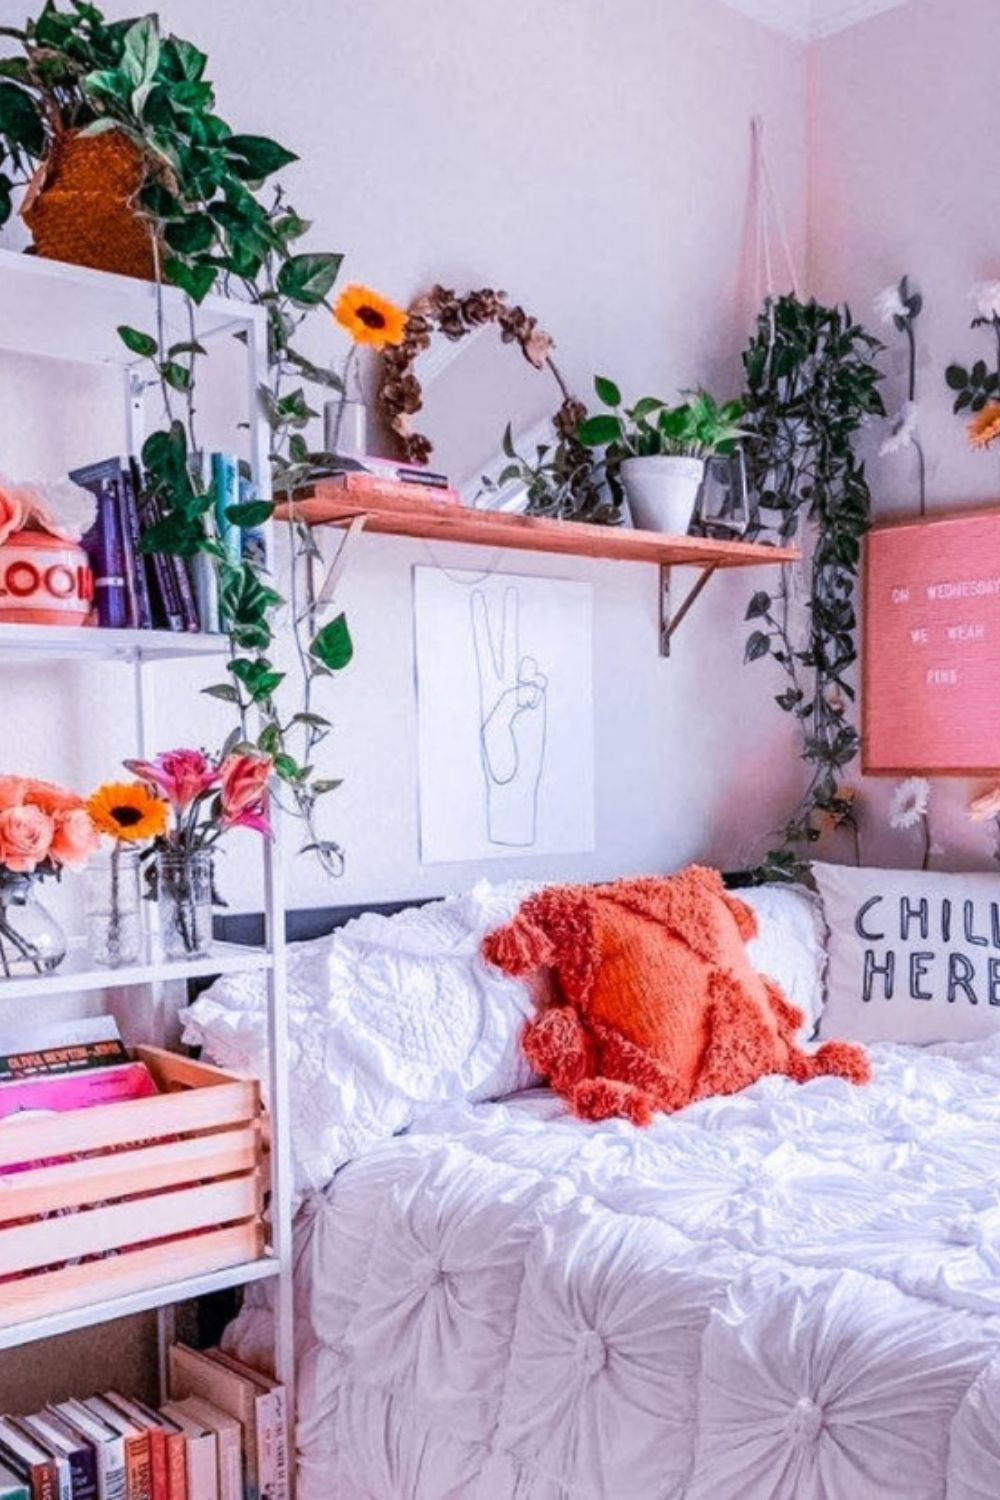 Amazing Aesthetics Room Decor Ideas for Youngs' Apartments 2021